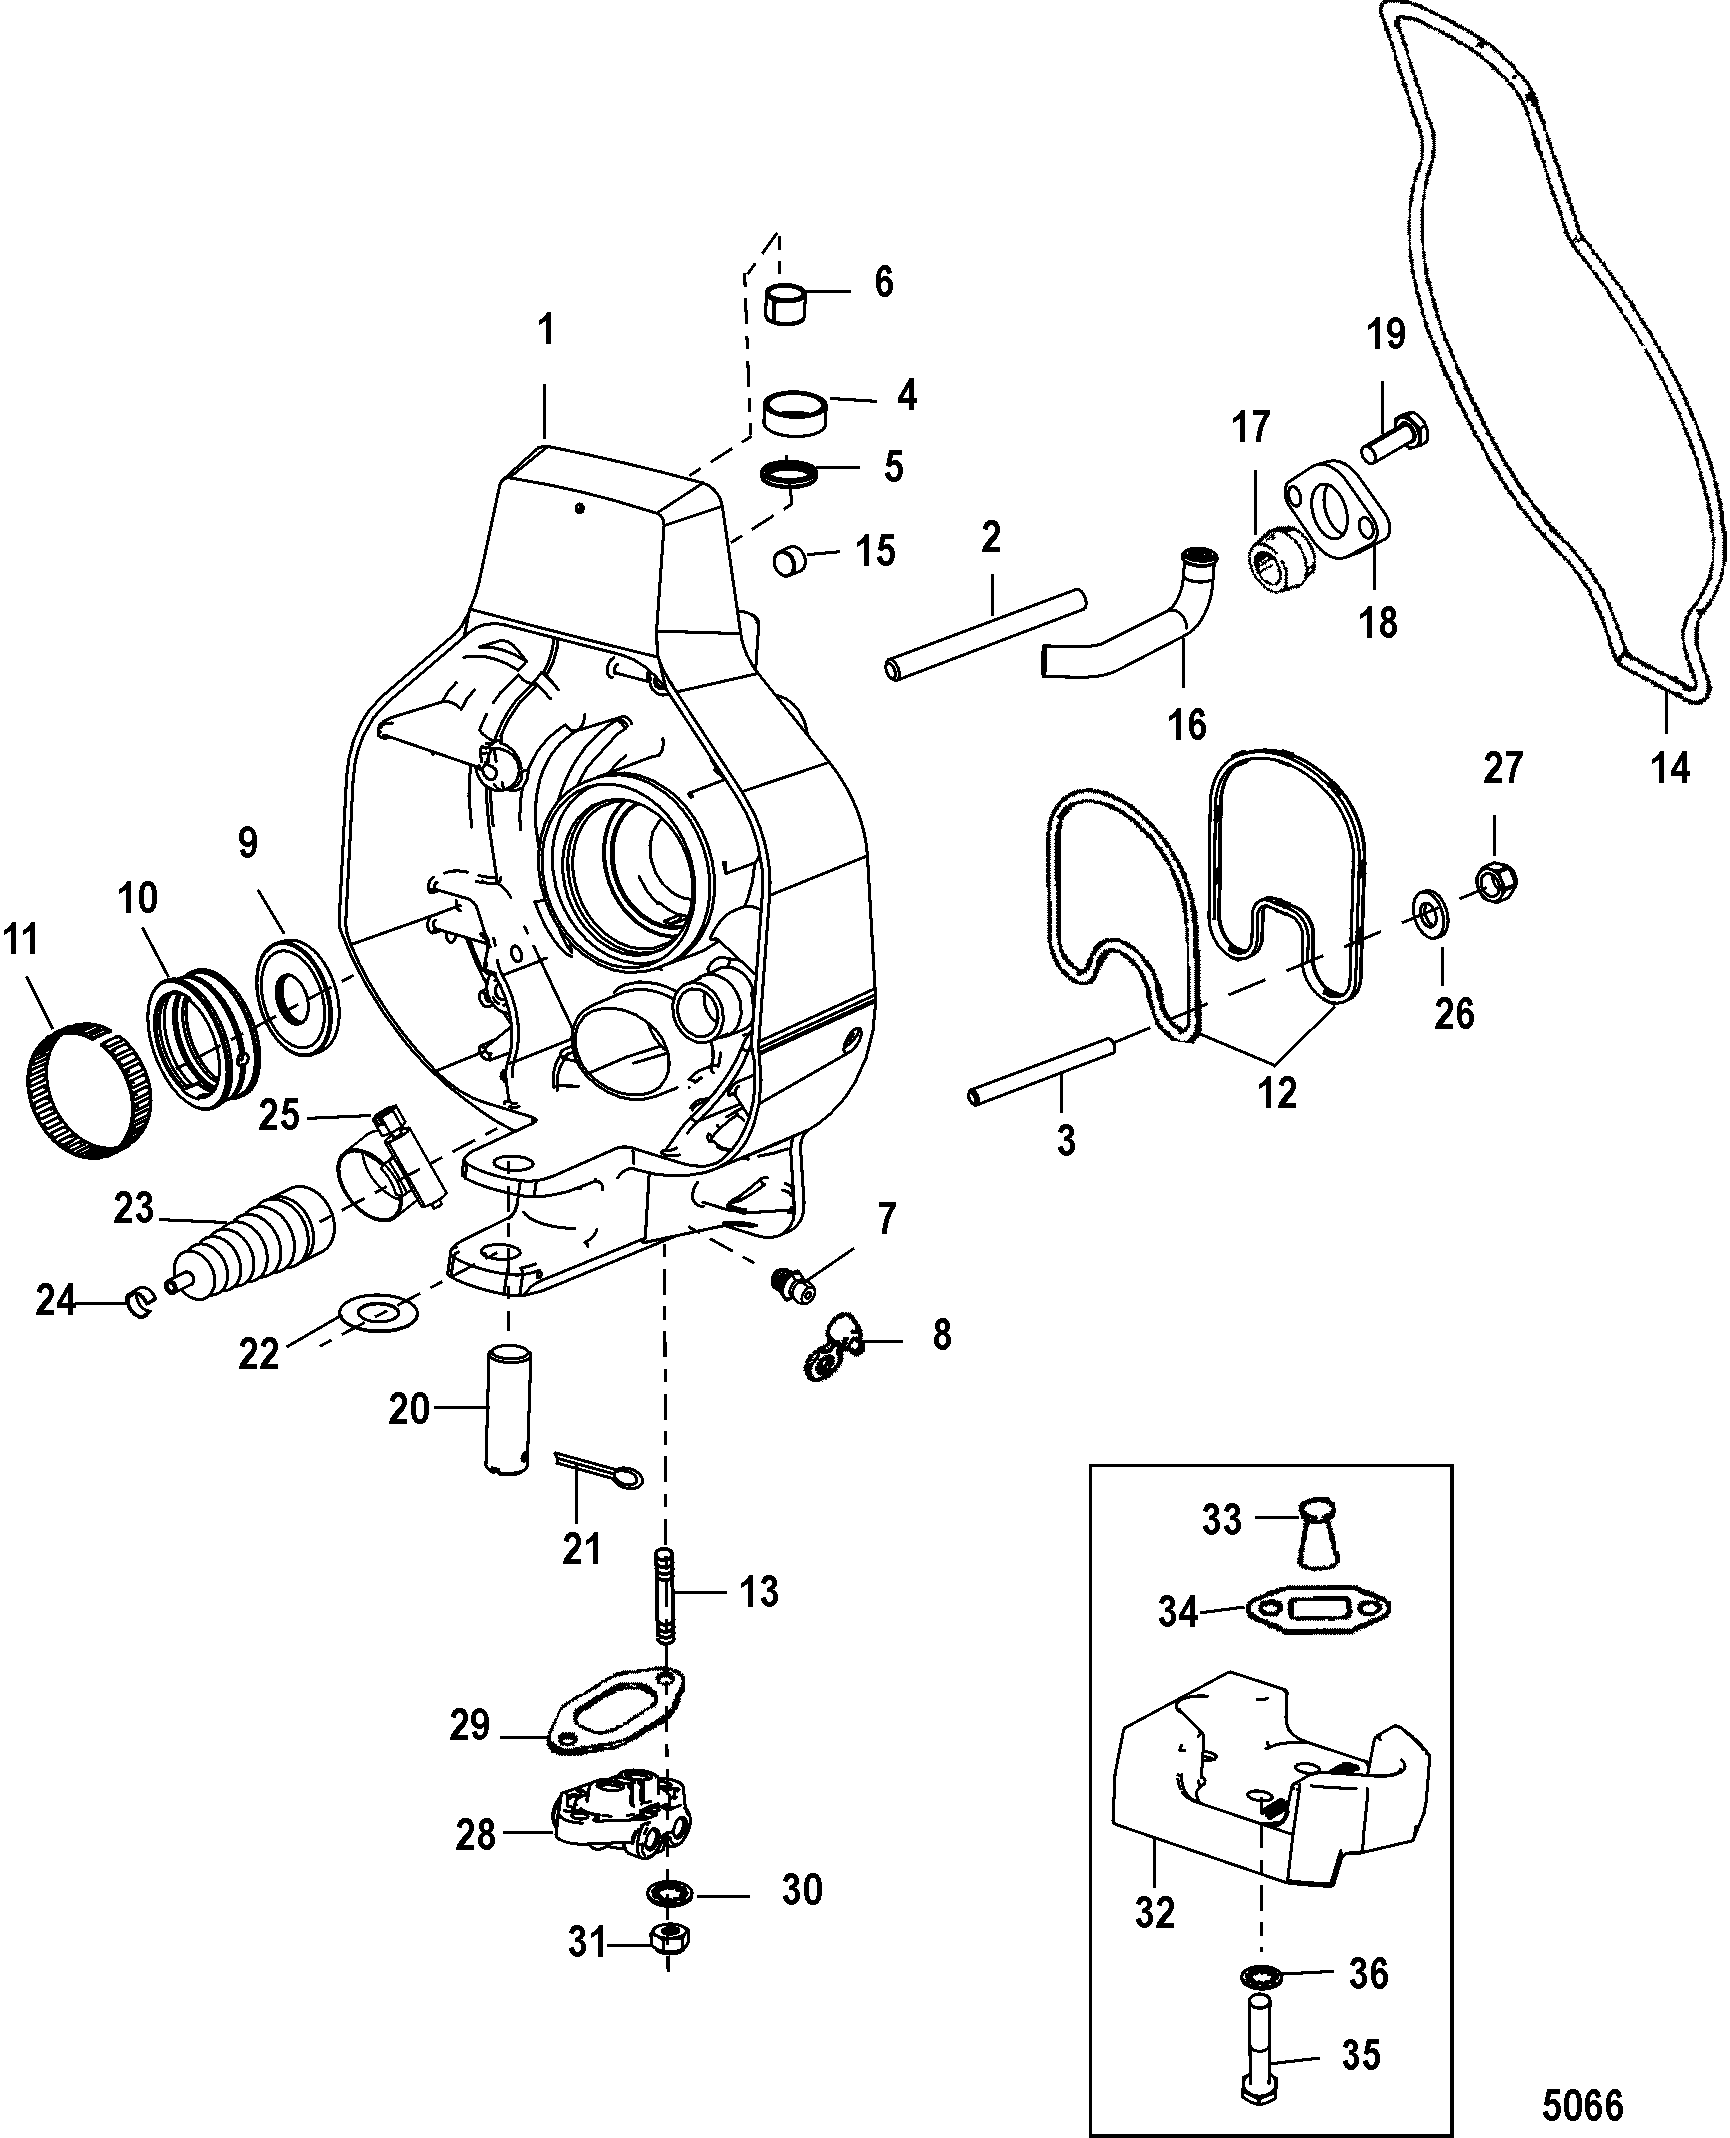 GIMBAL HOUSING FOR MERCRUISER ALPHA ONE GEN II STERNDRIVE